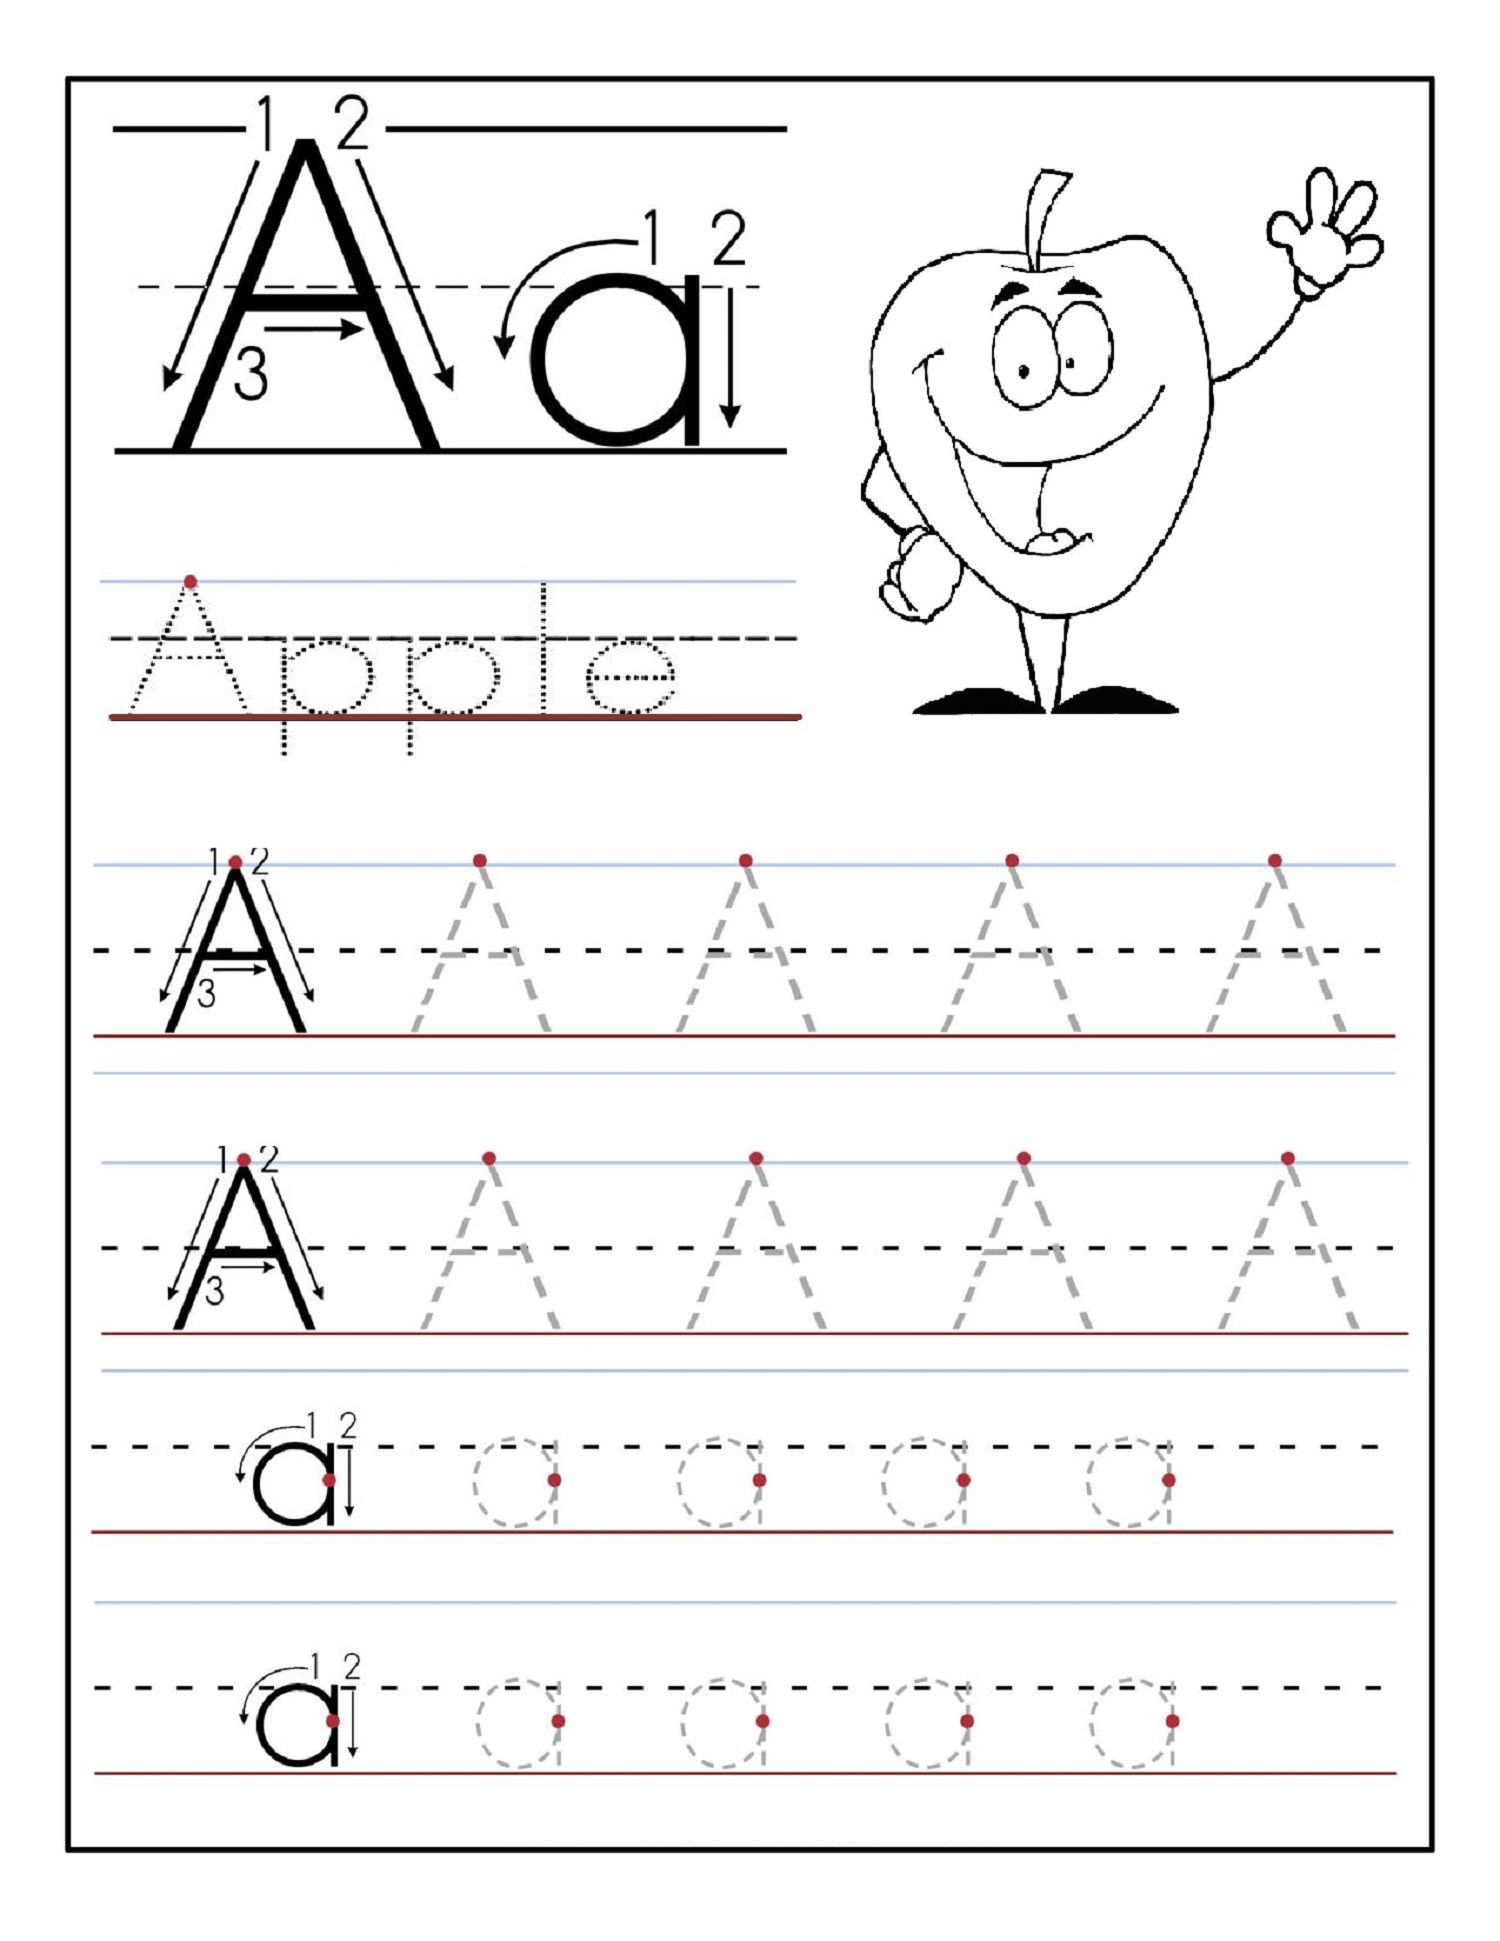 Tracing The Letter A For First Writing Learning Dear Joya – Writing Letters Worksheets for Kindergarten